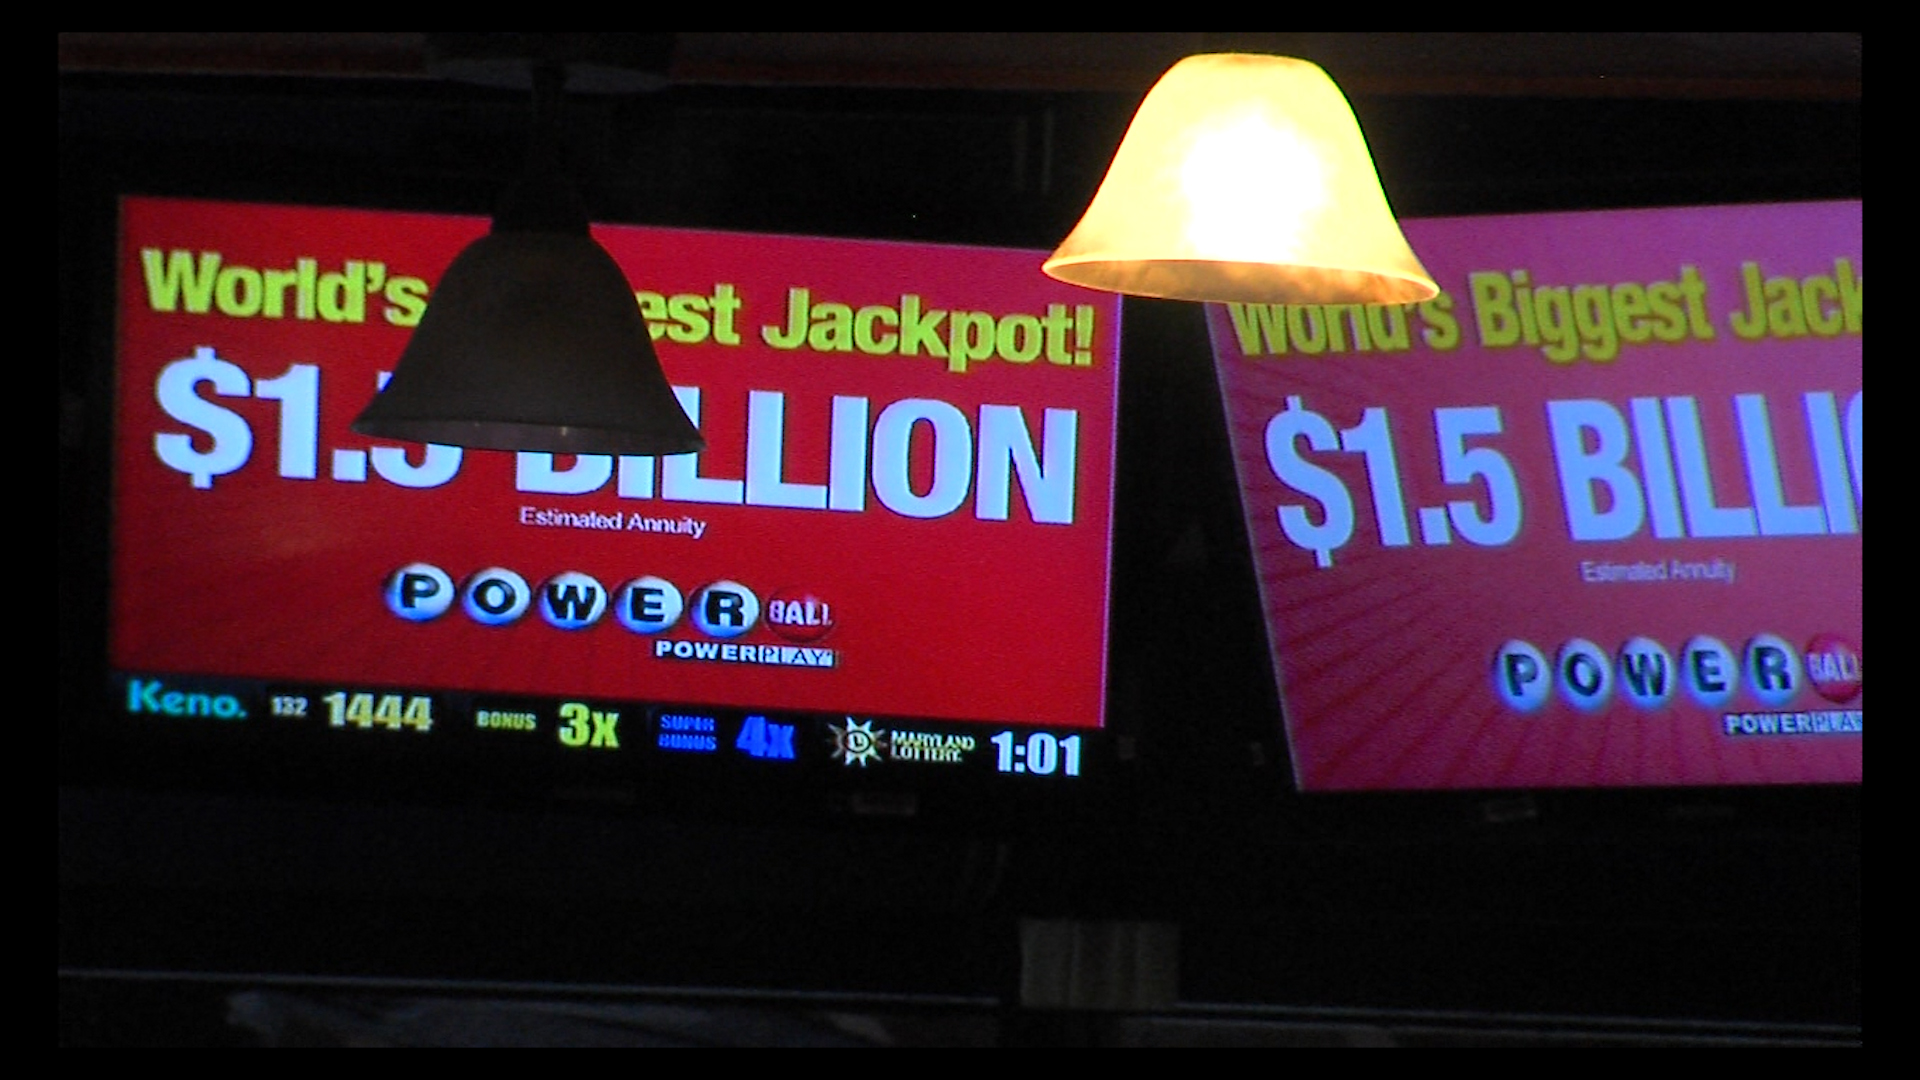 powerball drawing channel california photo - 1